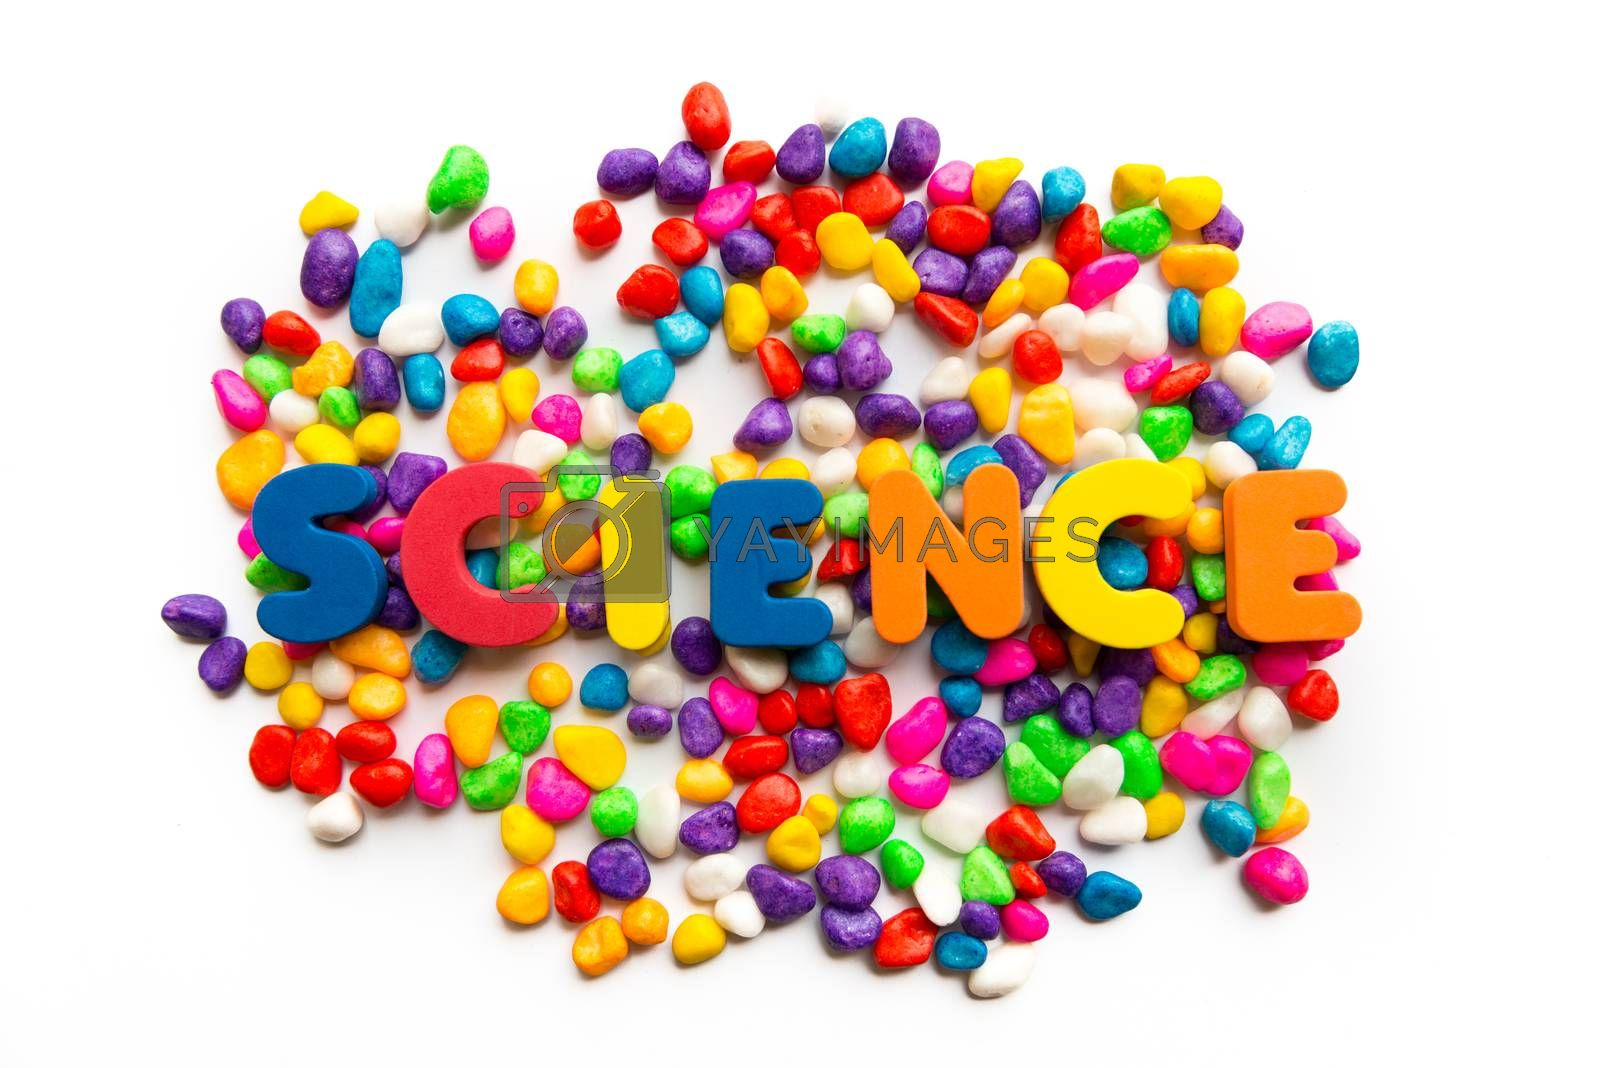 science word in colorful stone